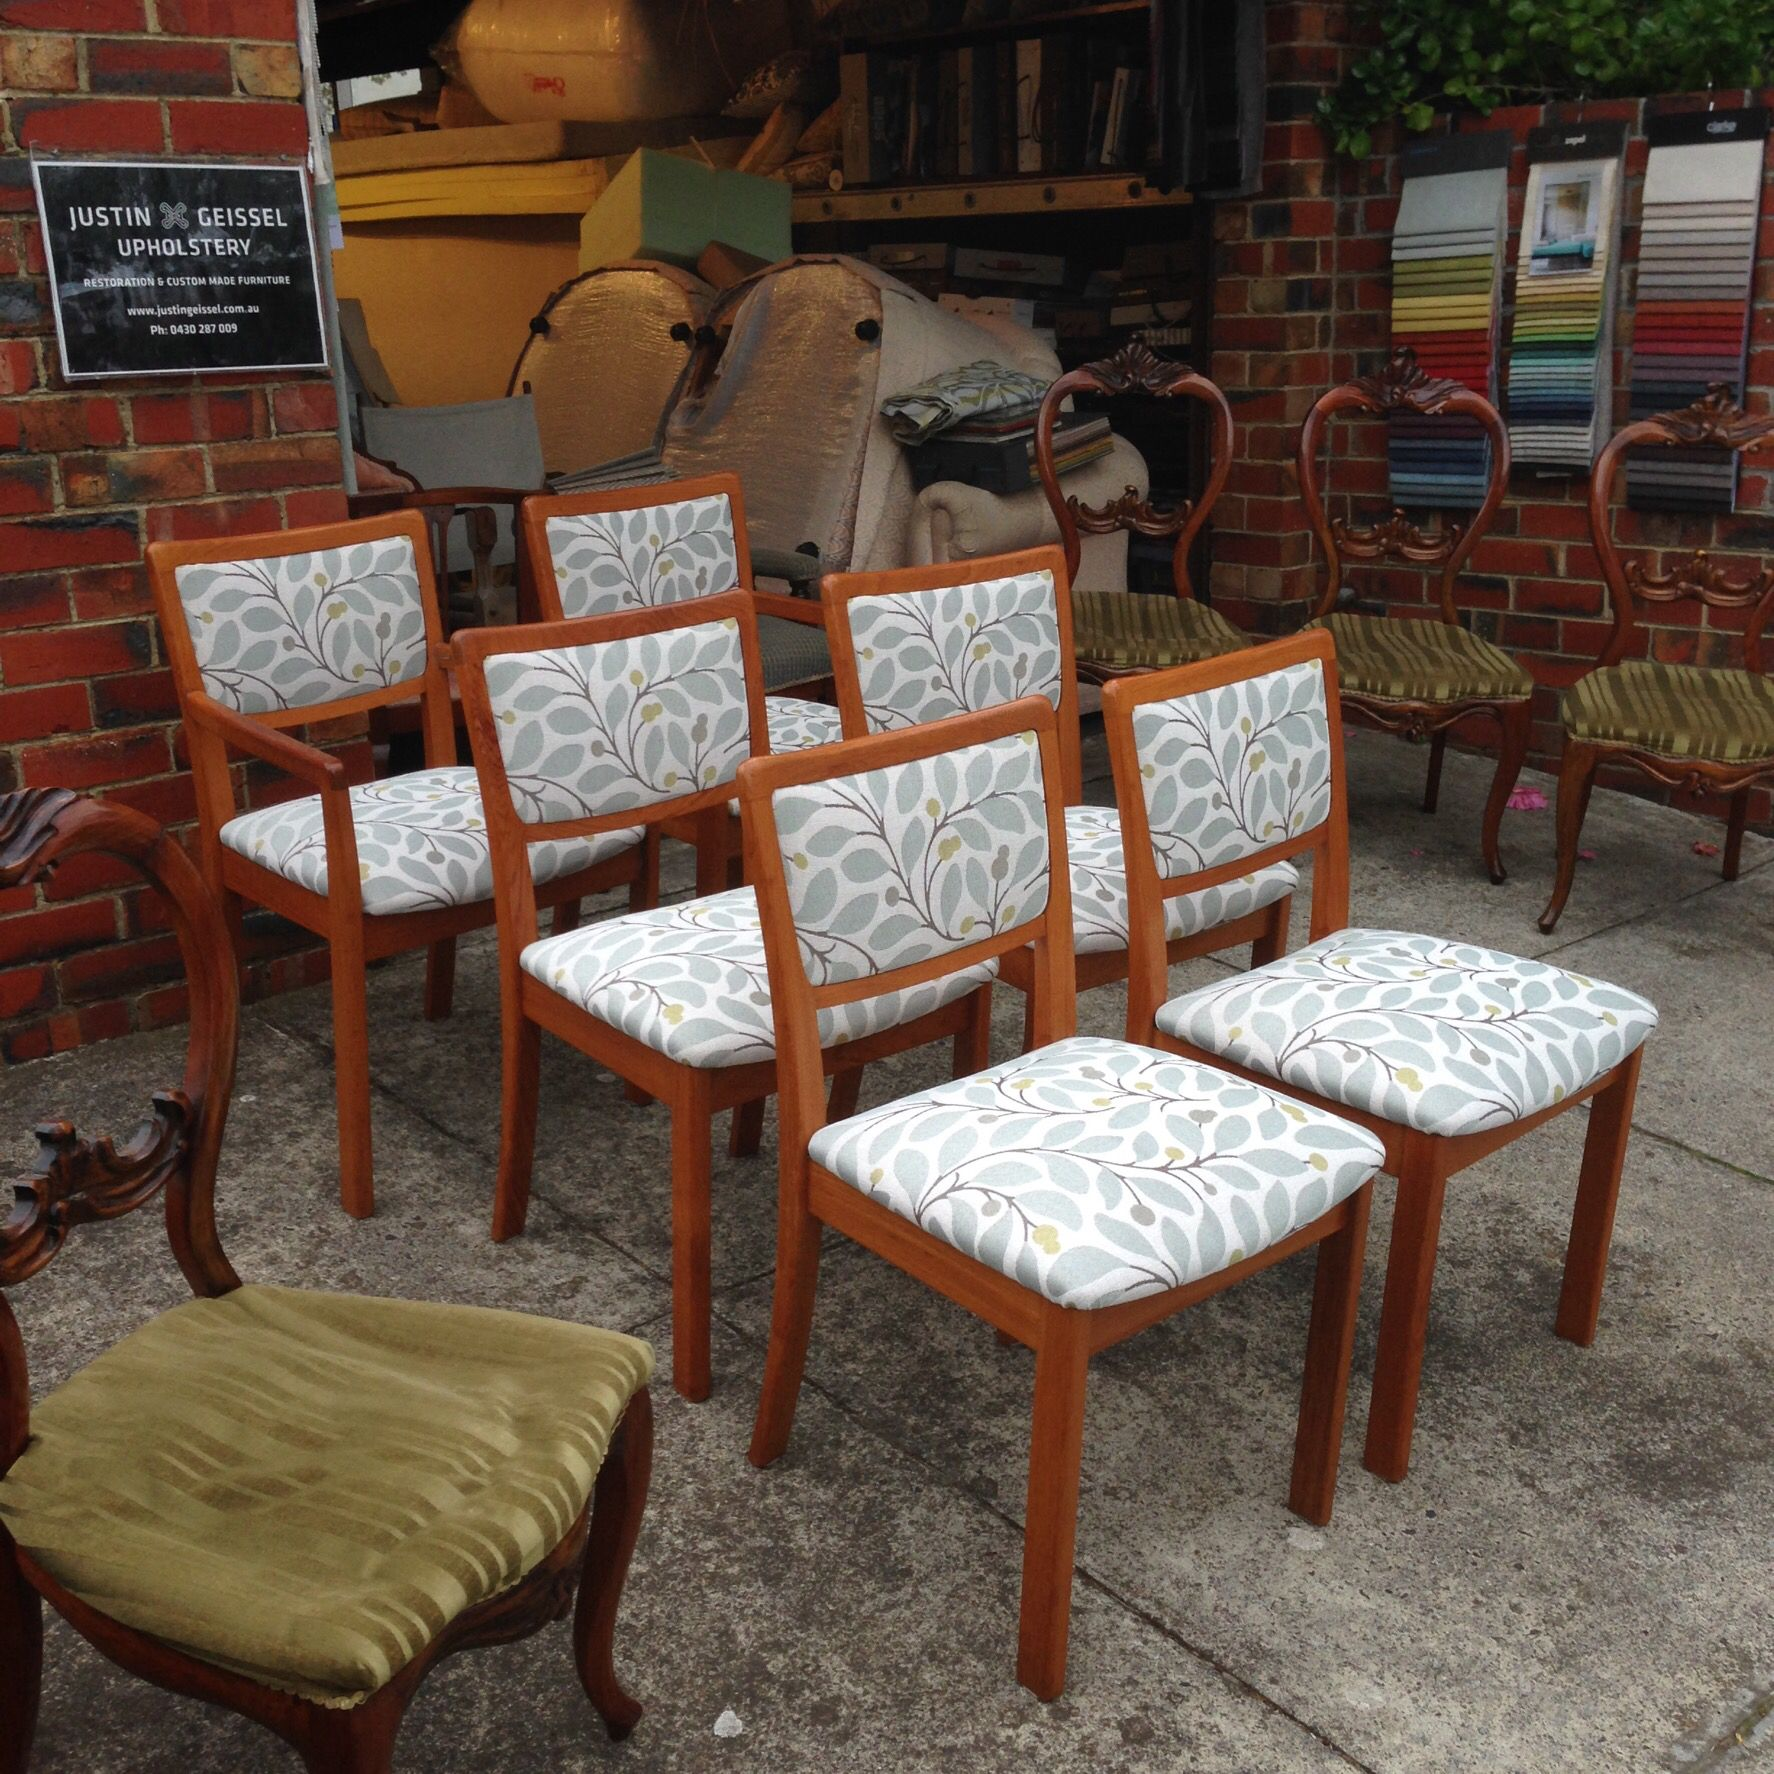 New Upholstery For These Parker Furniture Dining Chairs In Warwick Fabric,  Gosford Seafoam.